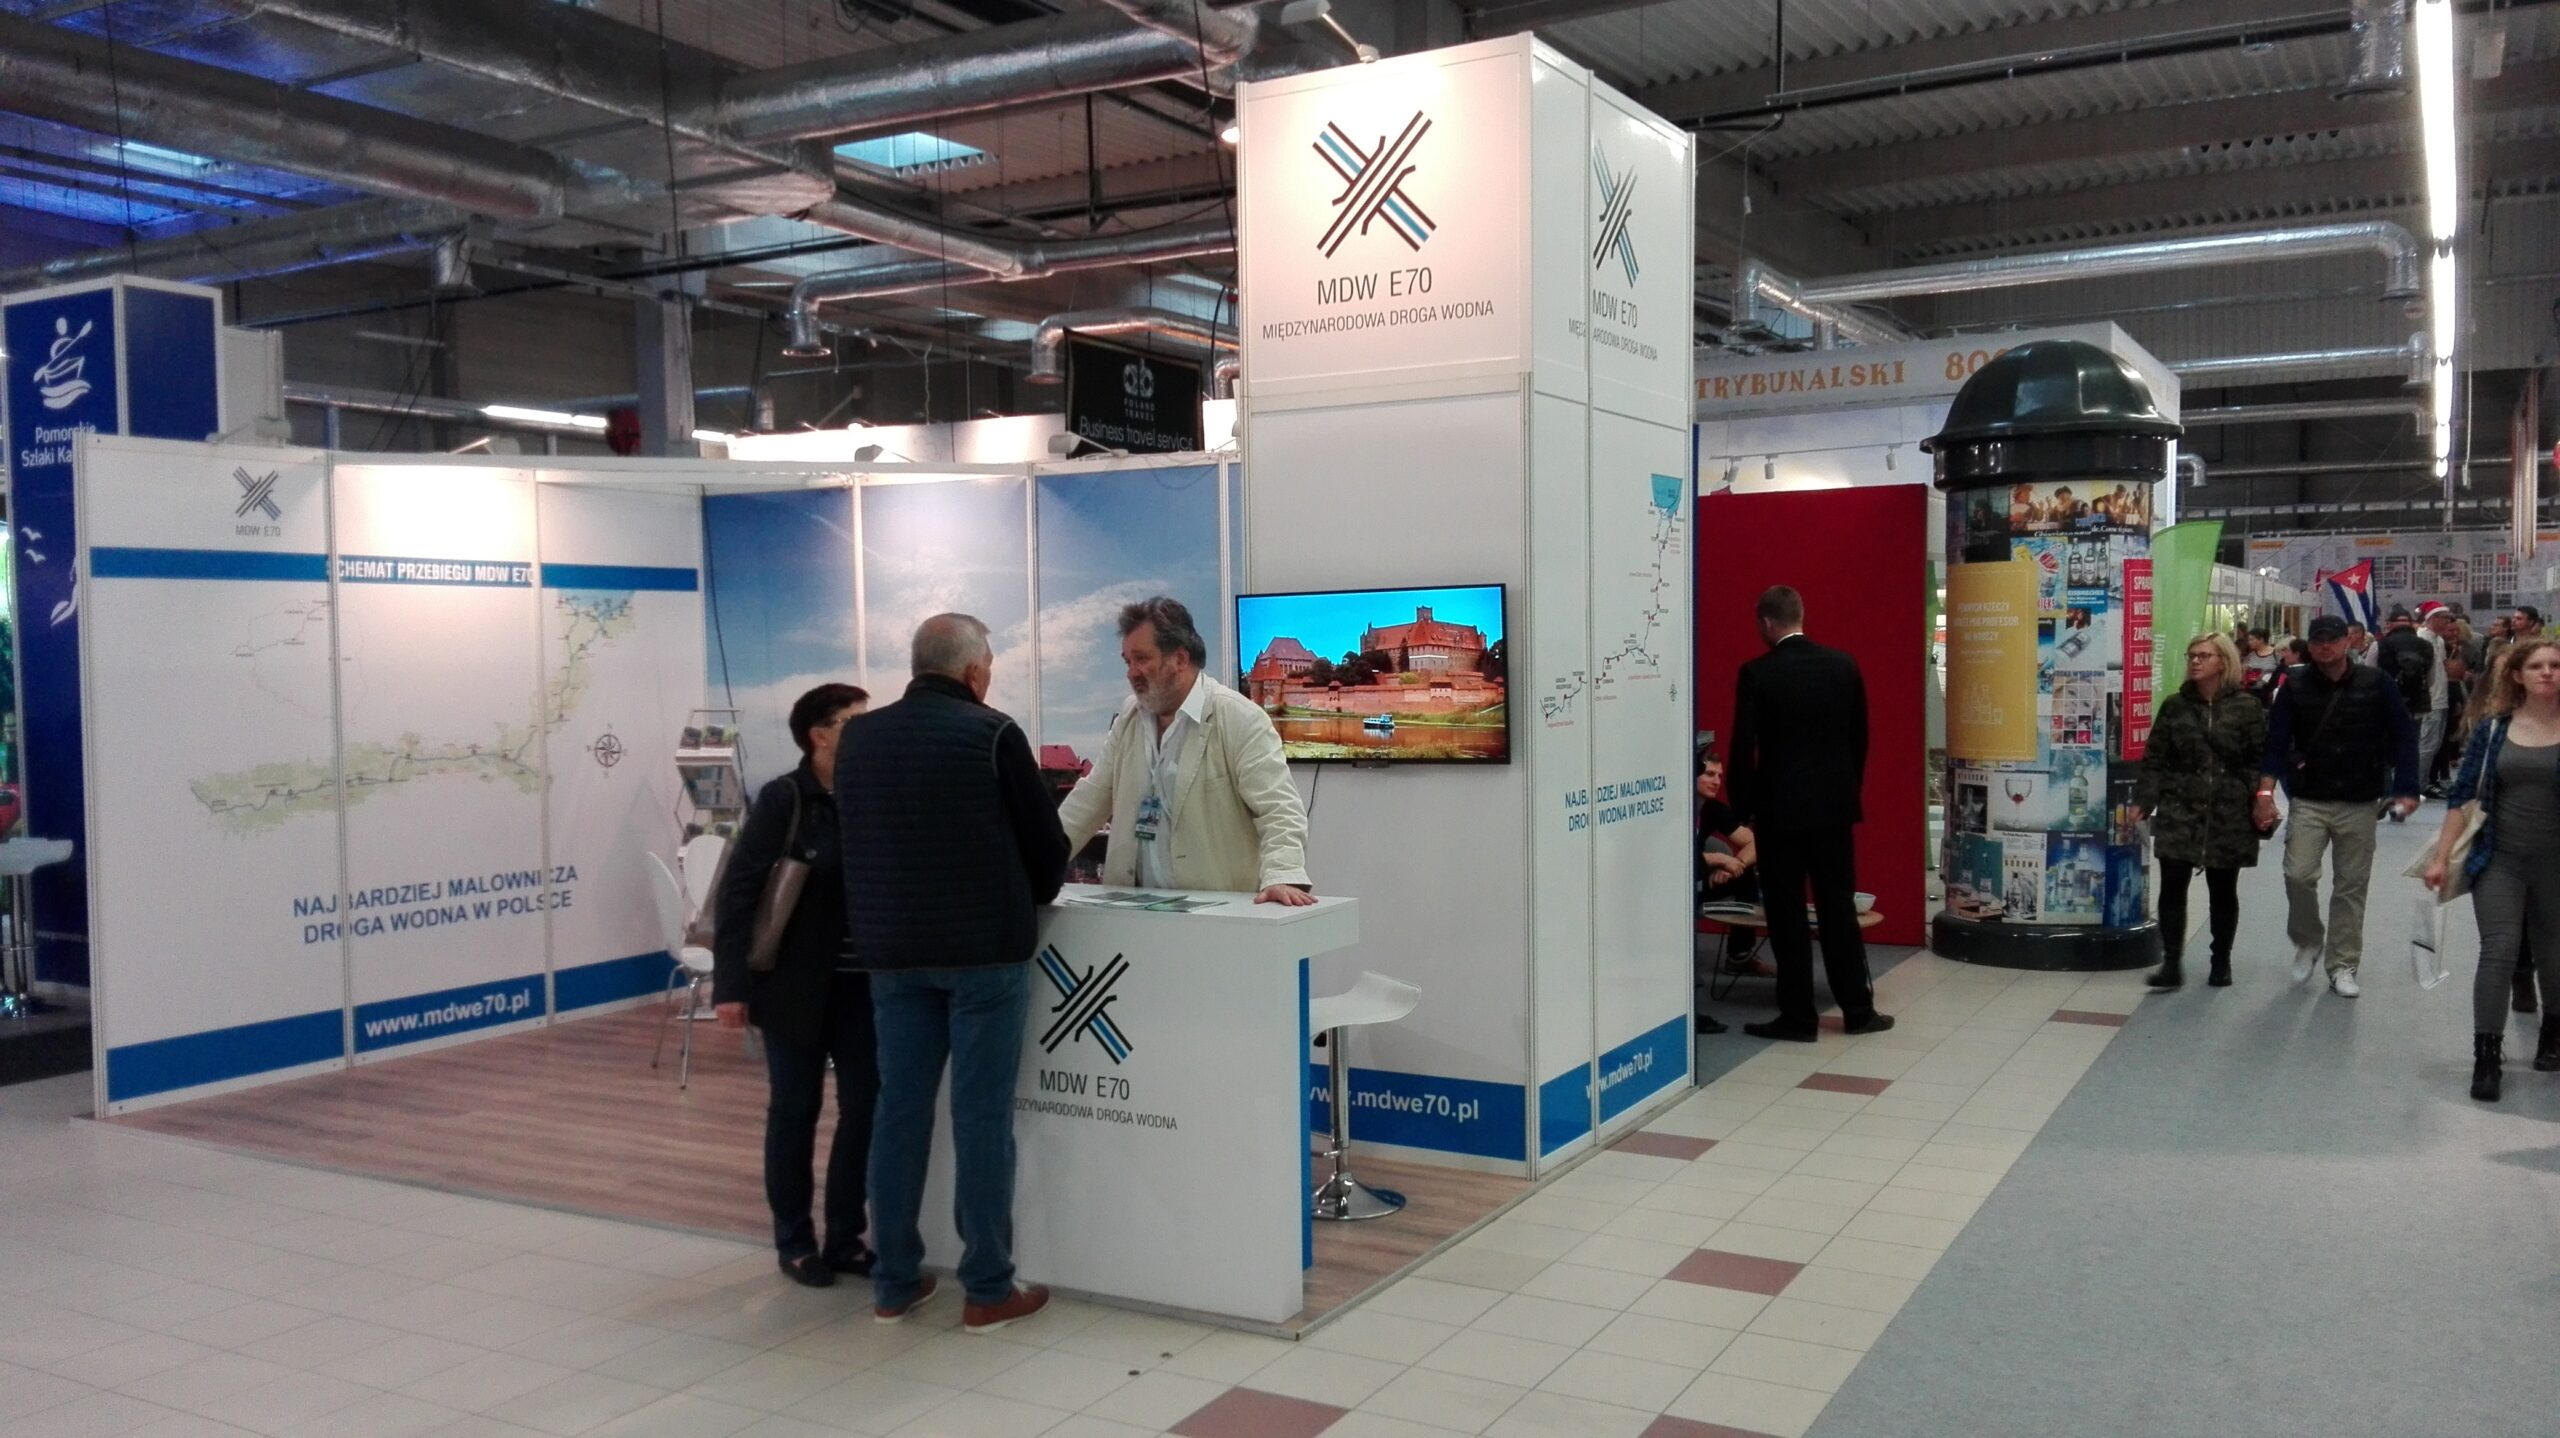 INTERNATIONAL WATERWAY E70 AT THE WORLD TRAVEL SHOW IN NADARZYN, POLAND